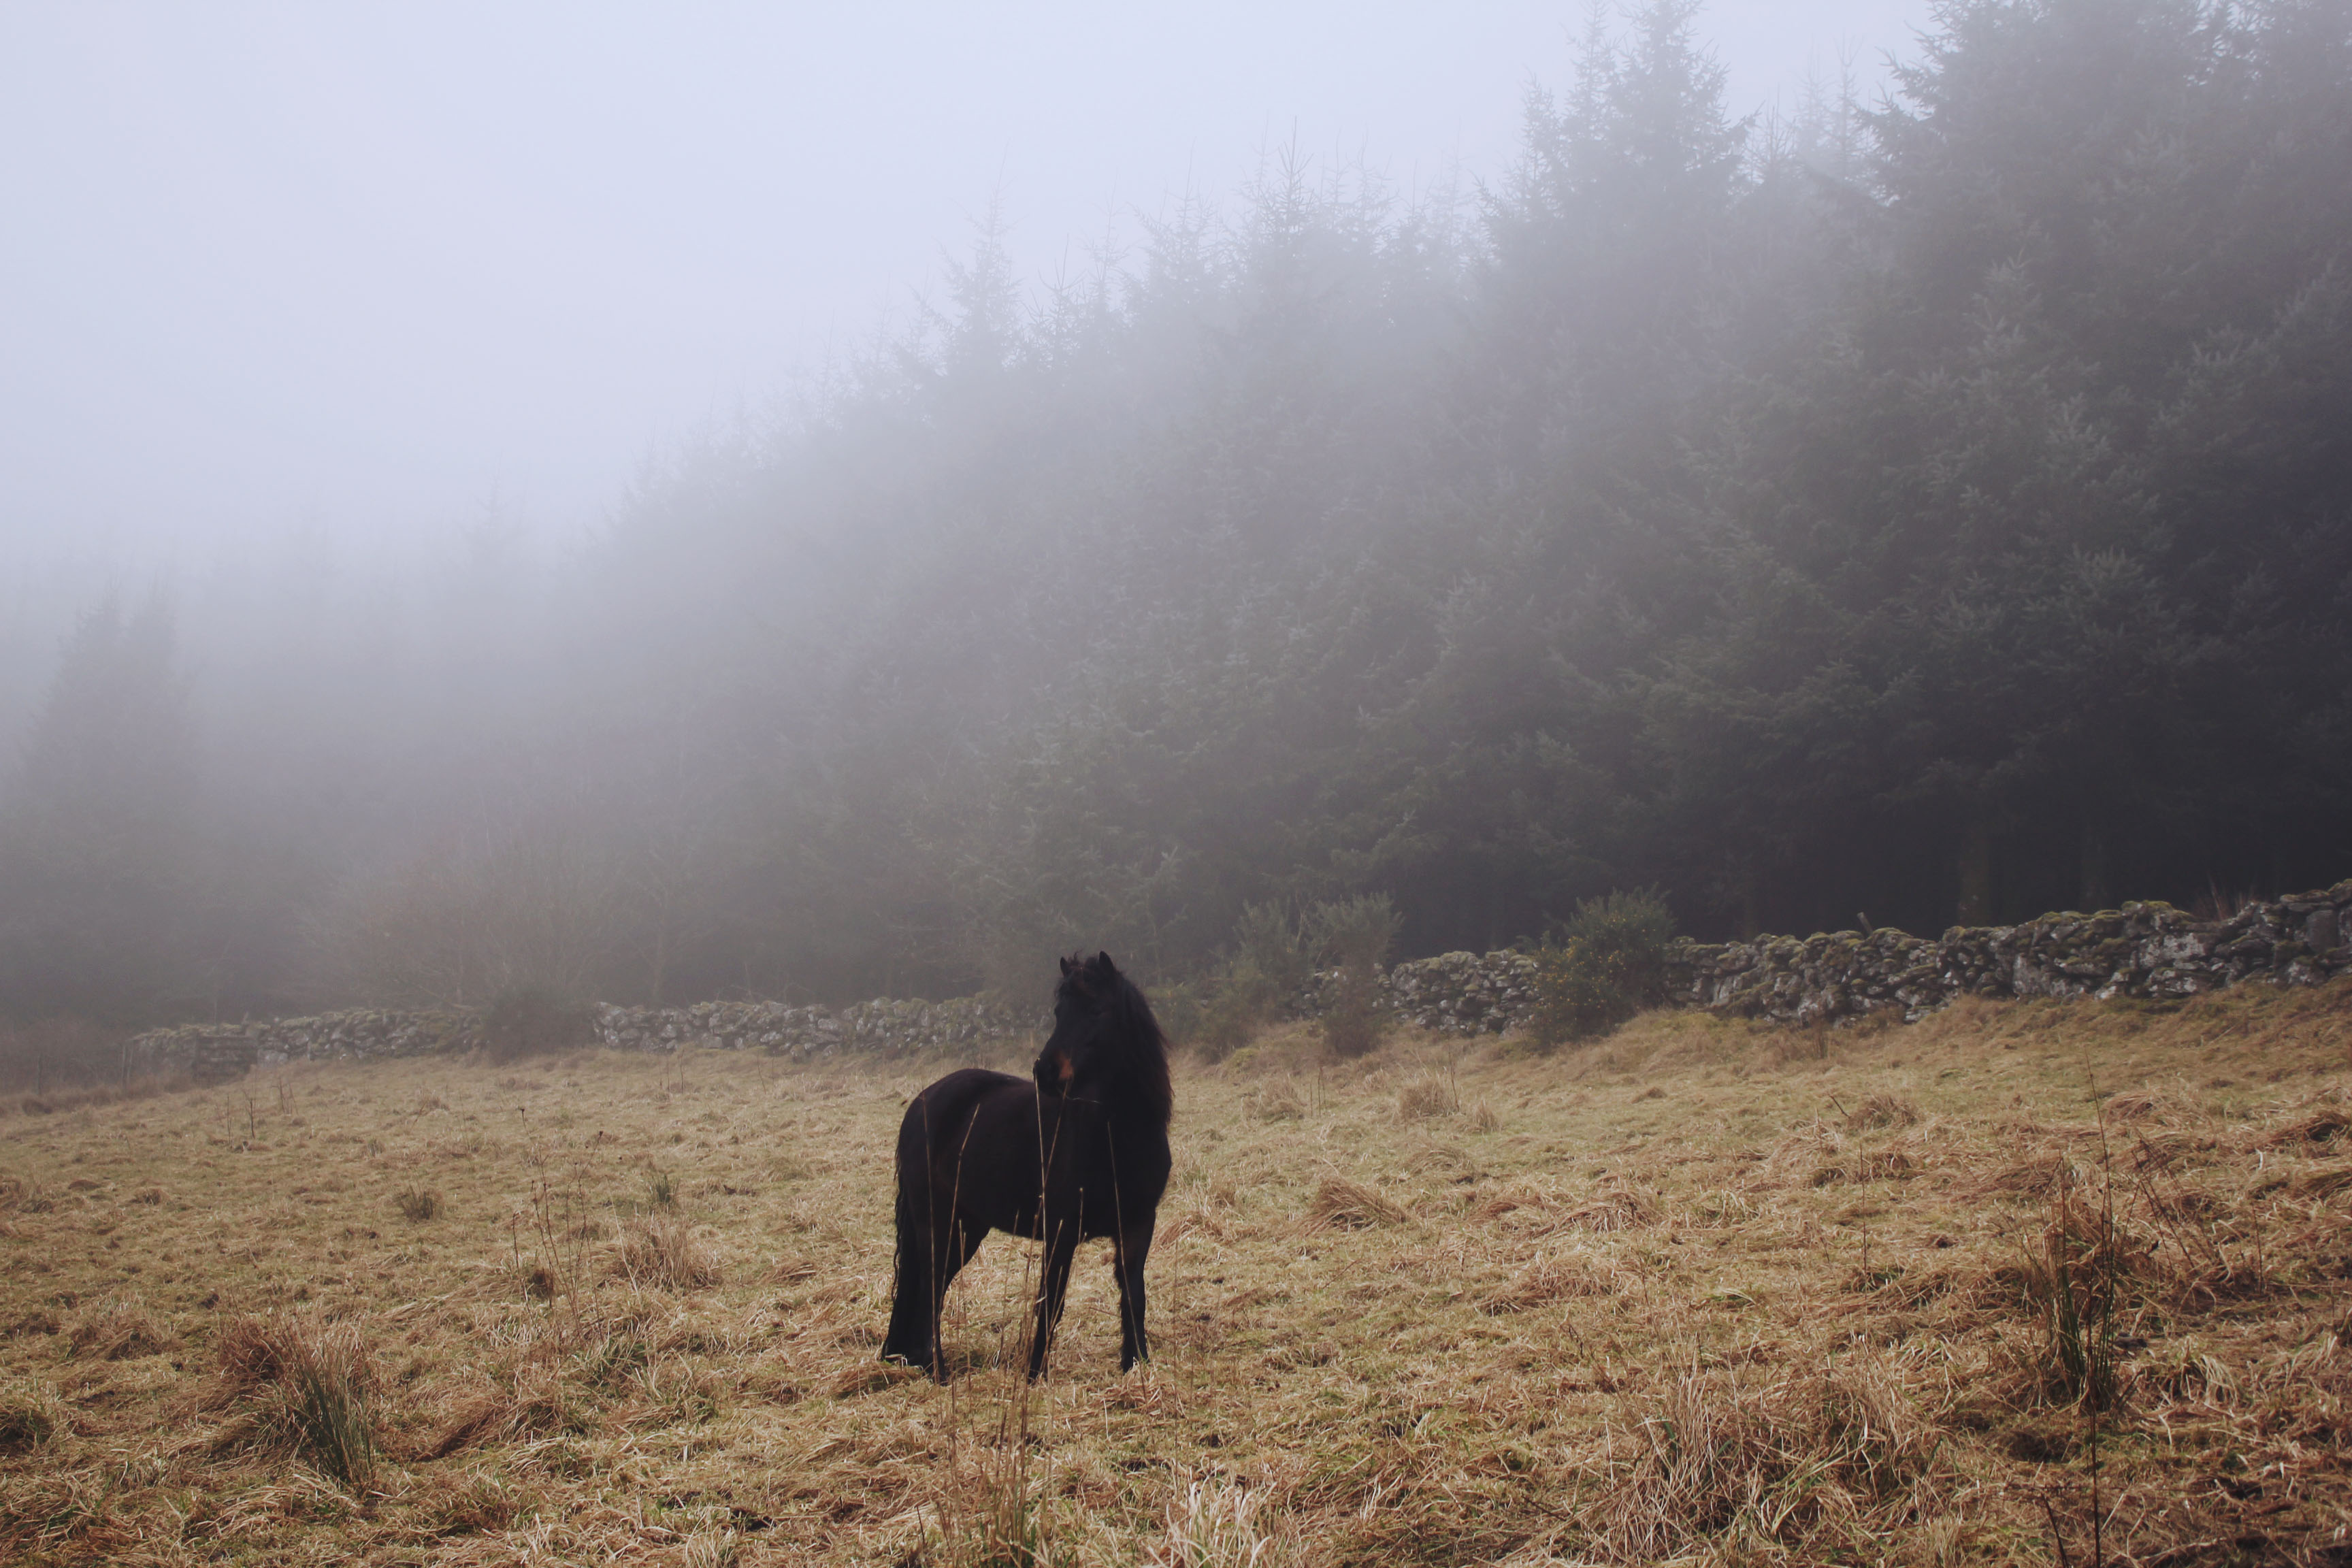 Dartmoor pony in the mist at Bellever Forest